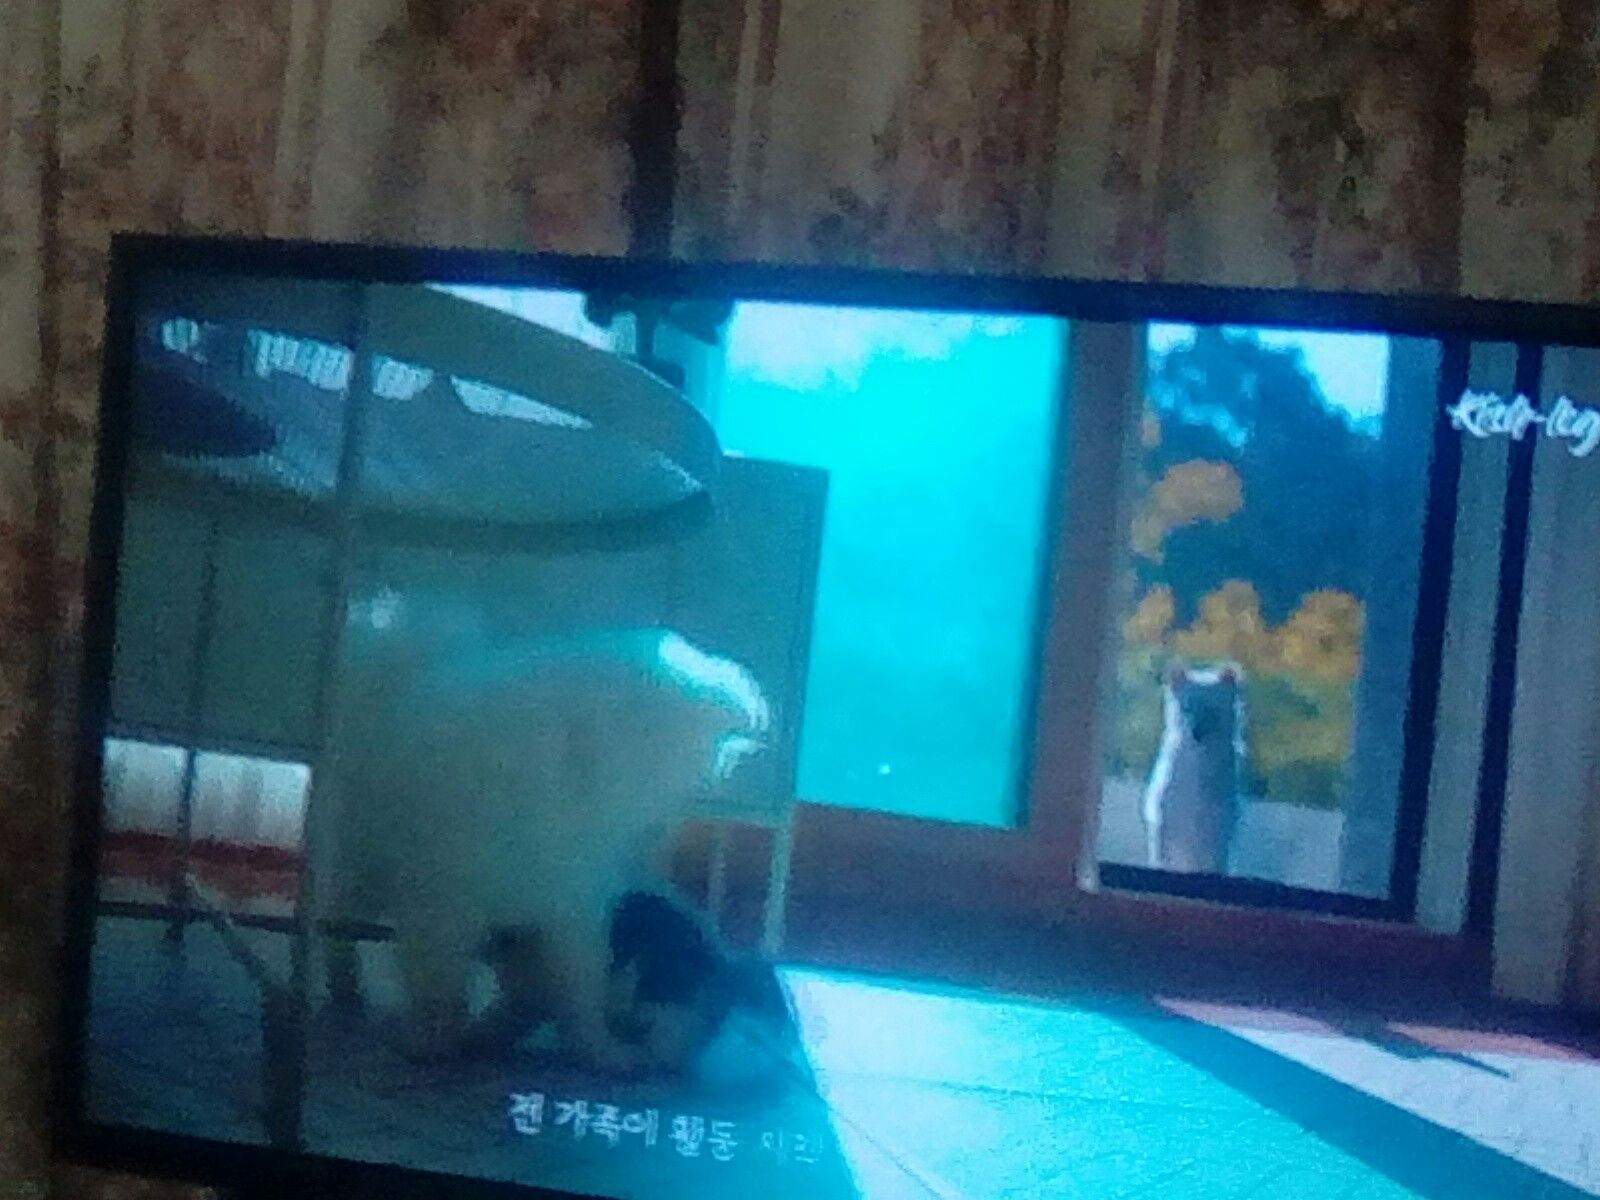 Pin By Dianahollcraft On Kitten Puppy Getting To Know Each Other Kitten Puppies Flatscreen Tv